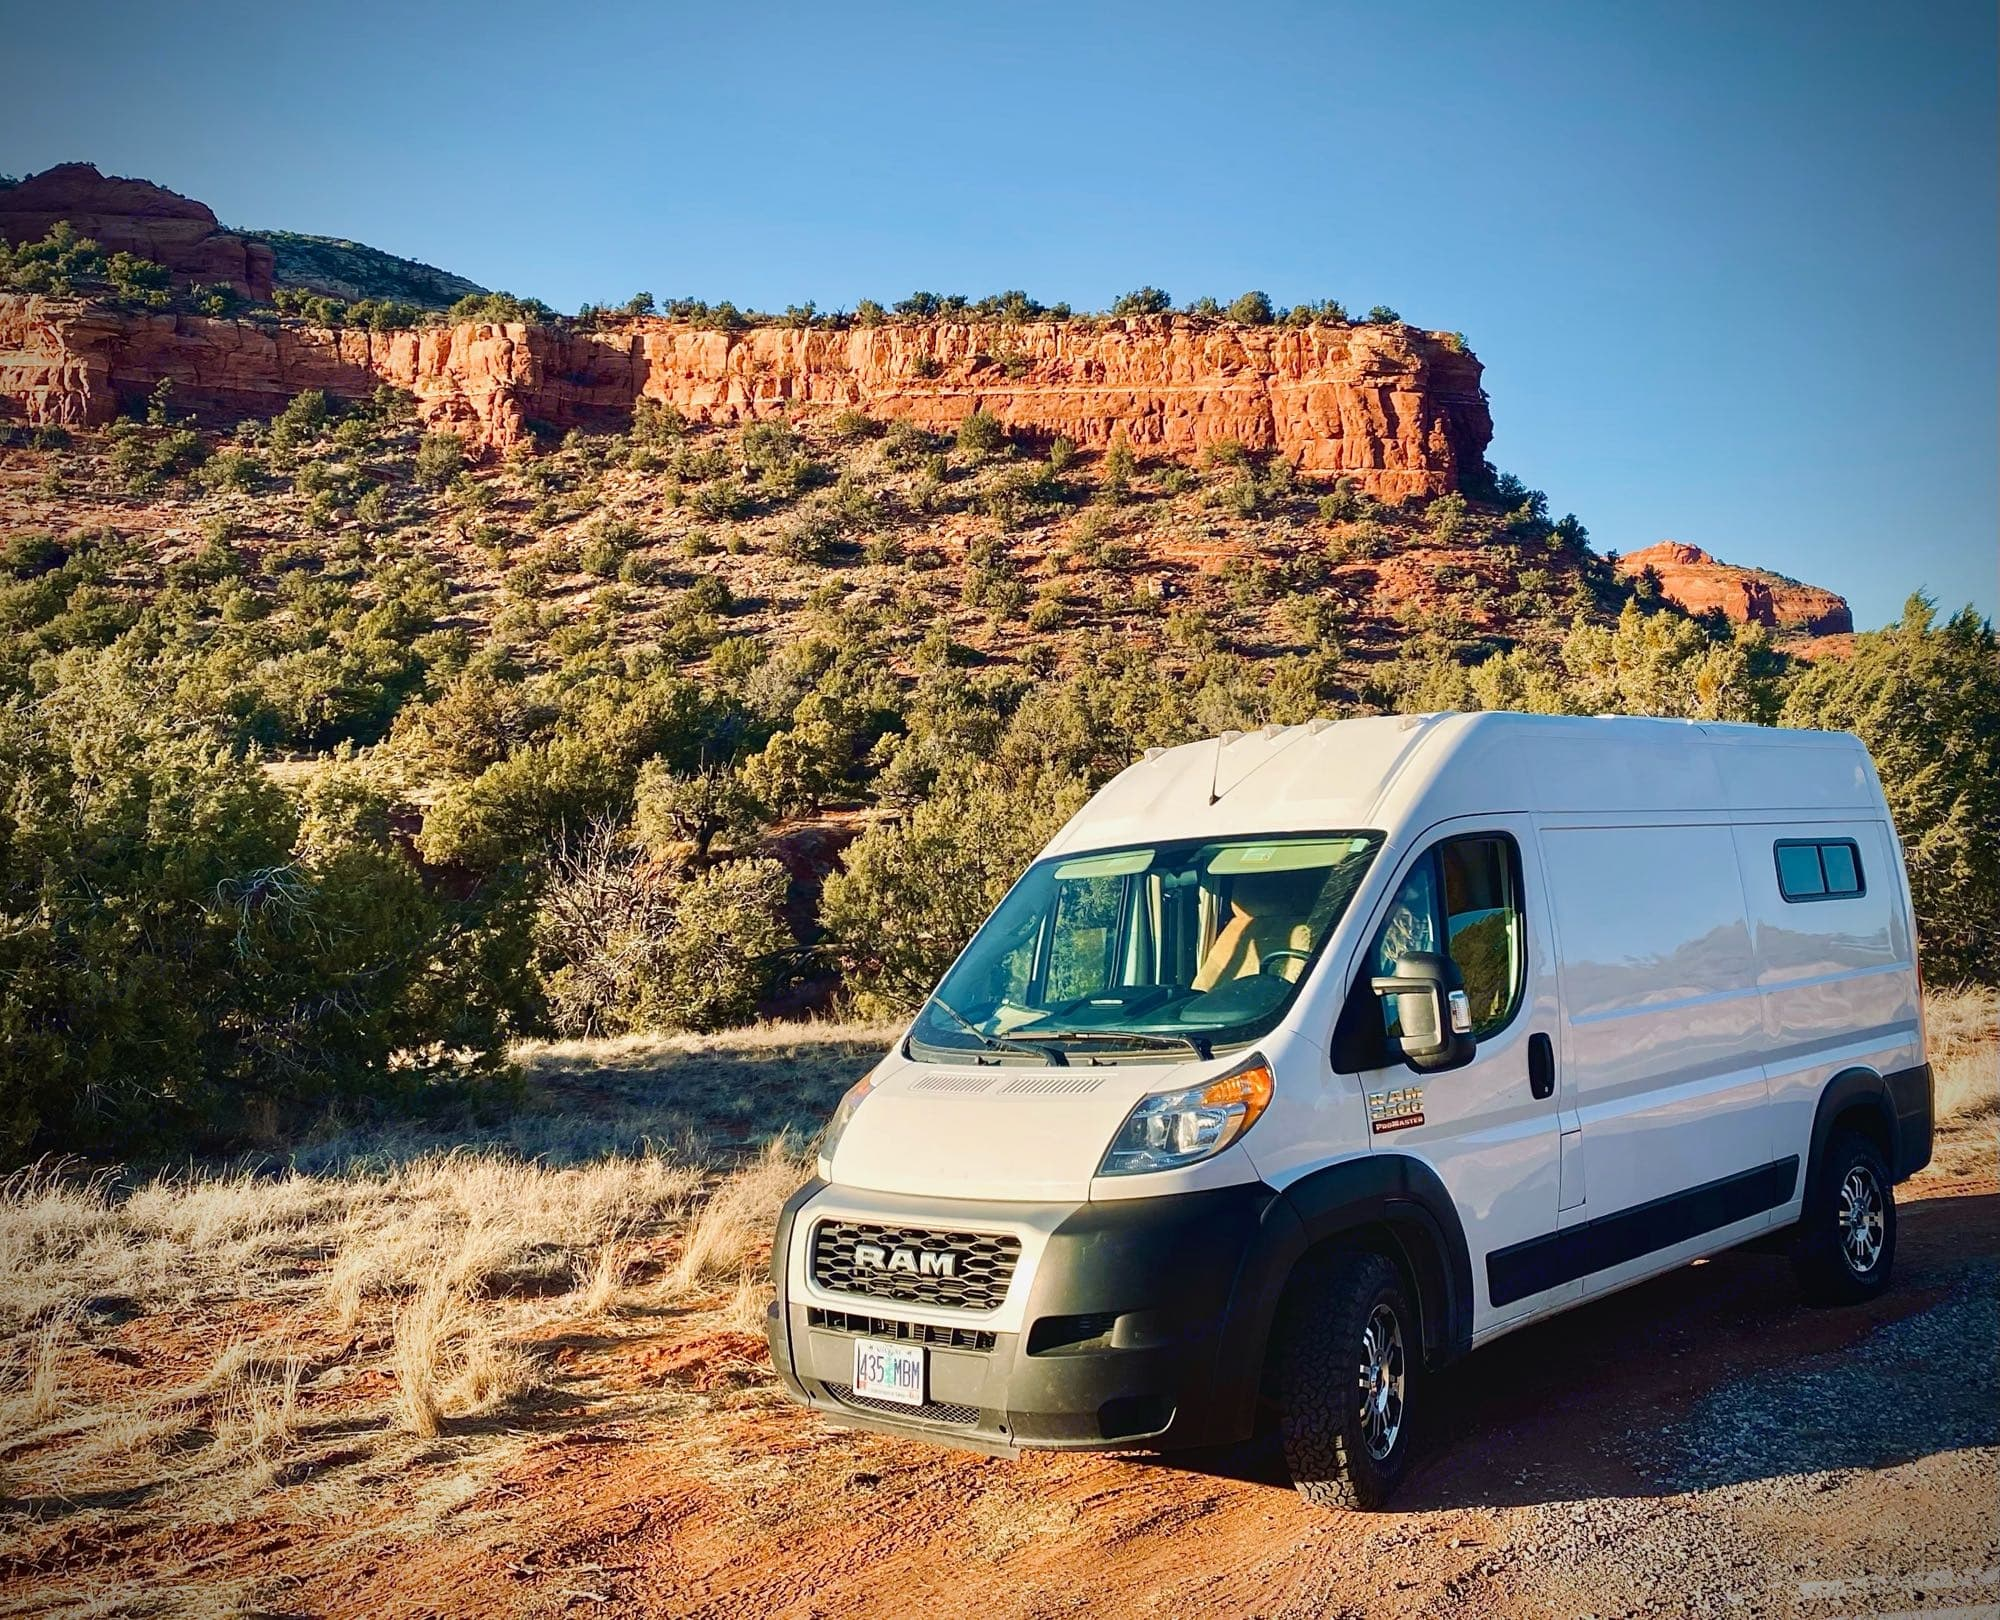 2019 Dodge Ram ProMaster 2500 - shortest version. Easy to drive and park. Fully loaded, solar powered. Front wheel drive takes you into wild places.. Dodge Other 2019